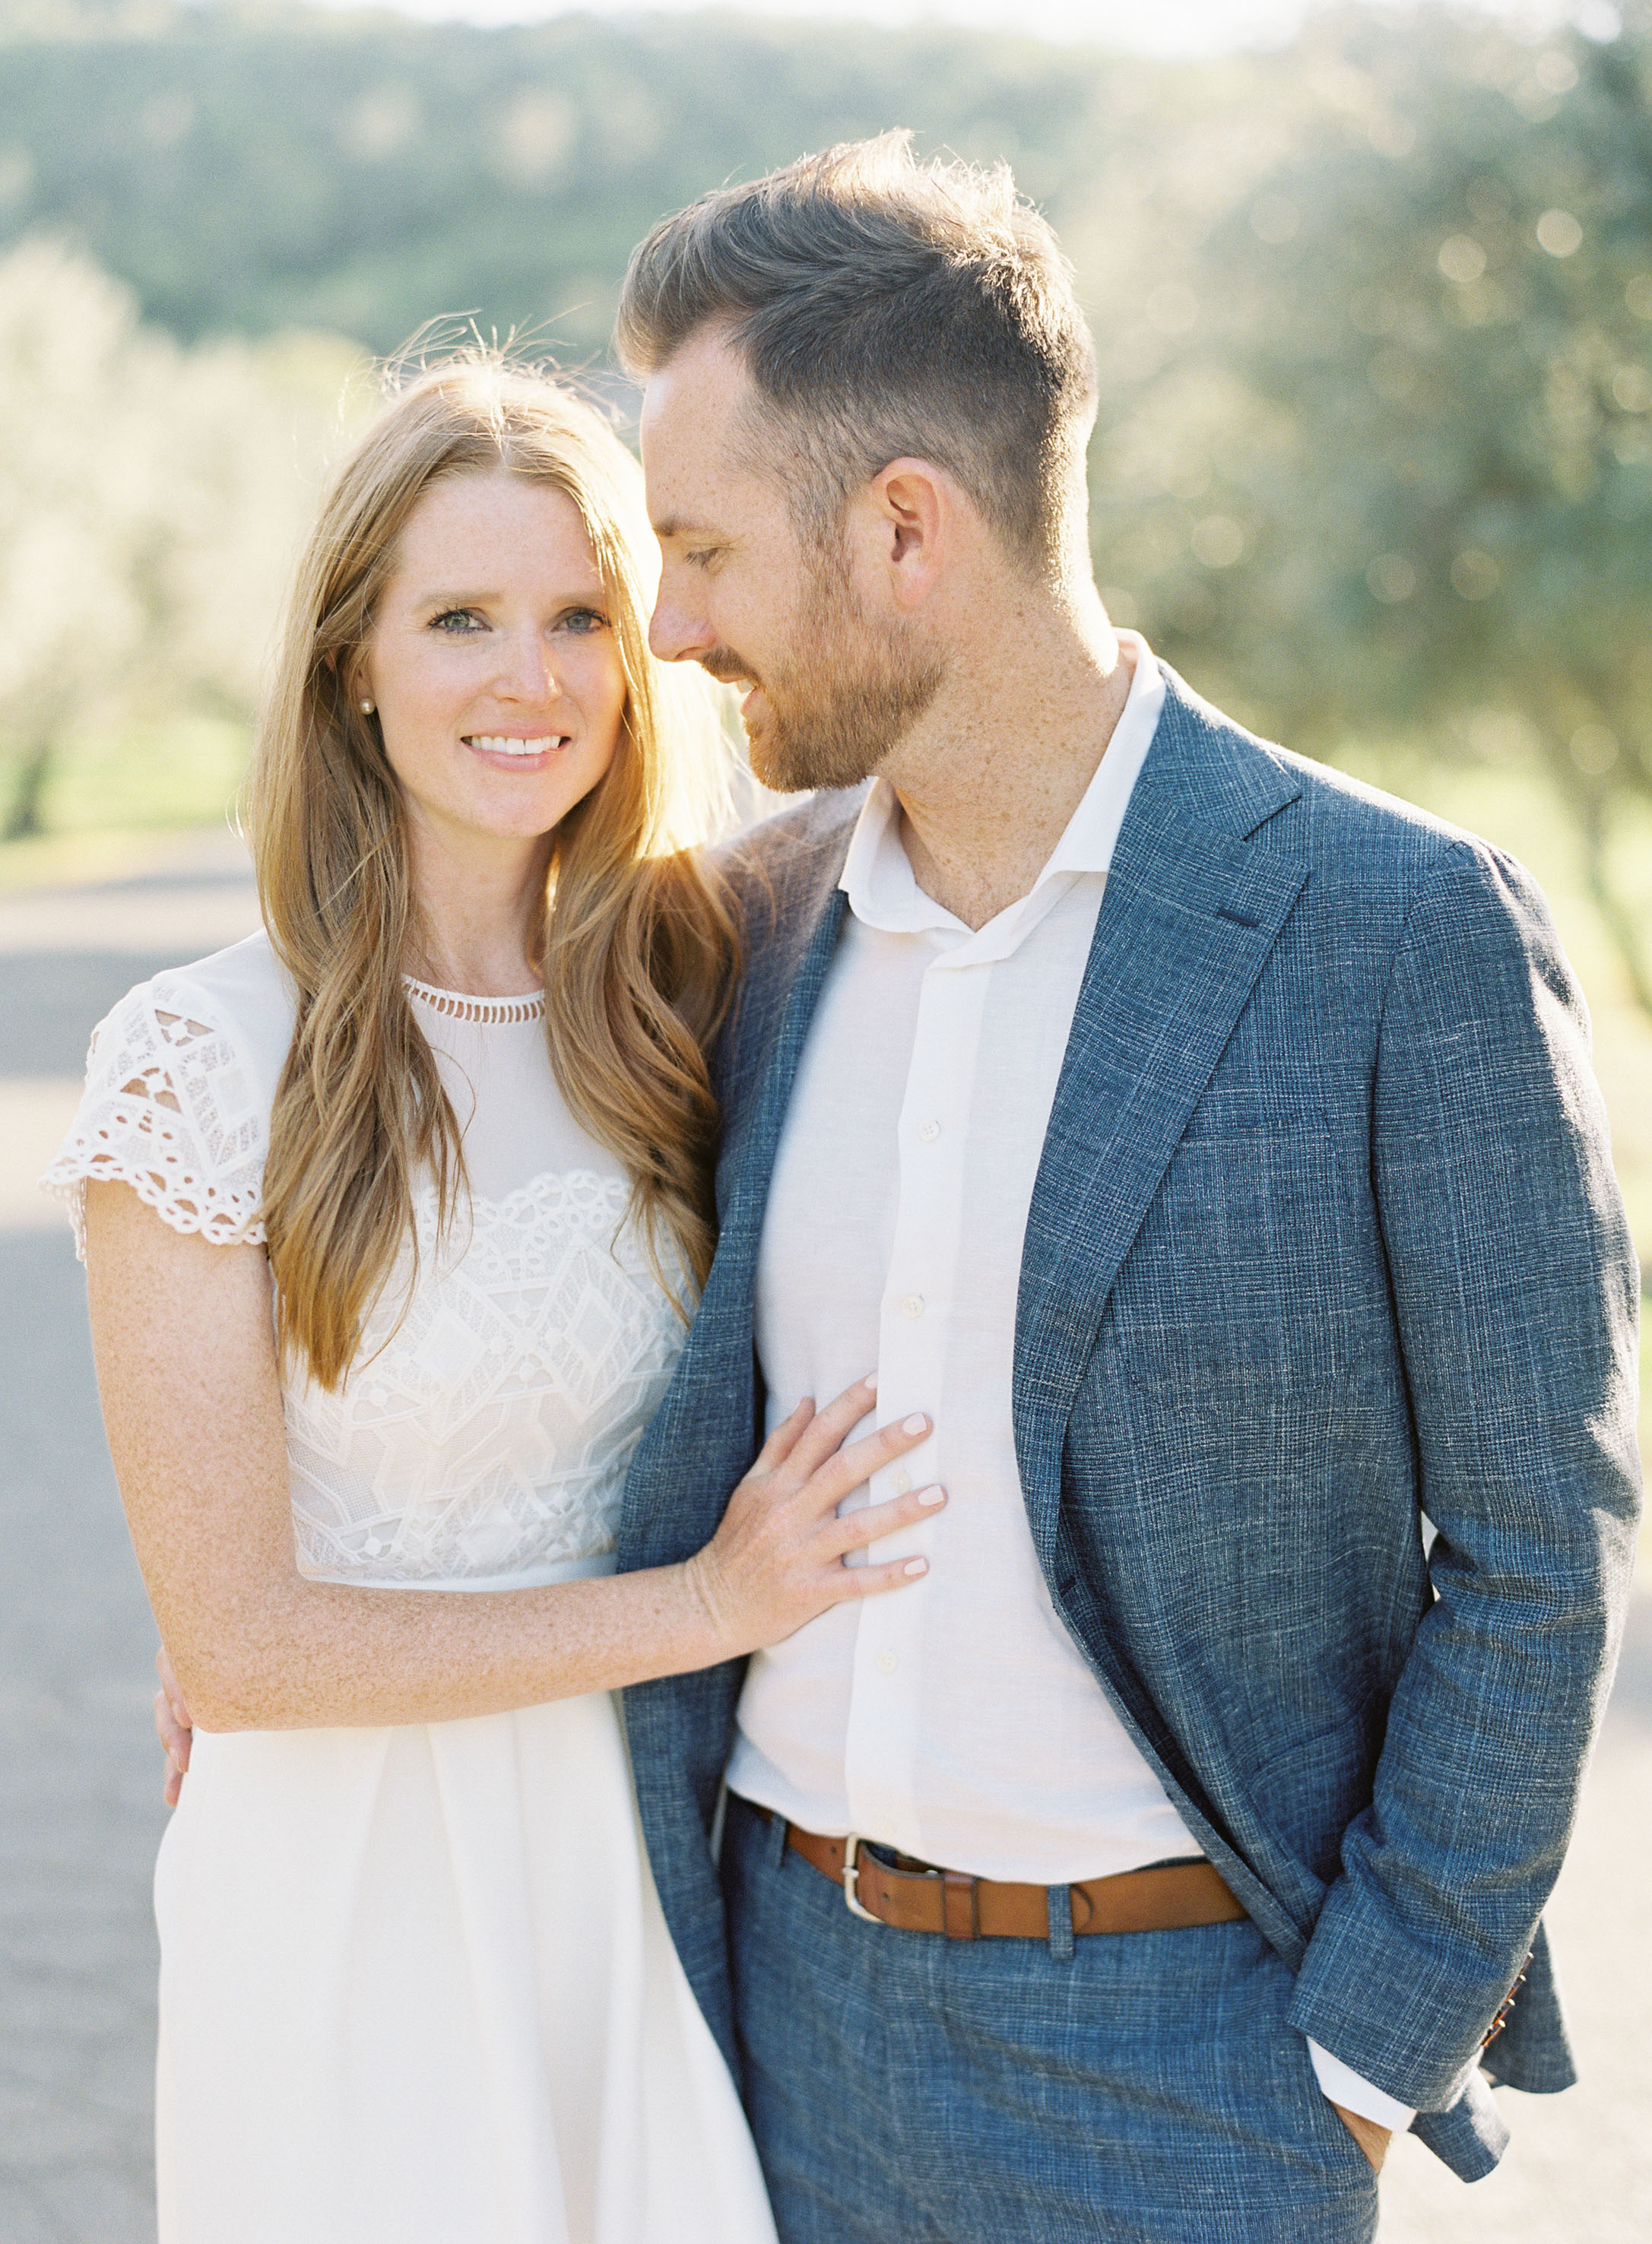 Meghan Mehan Photography - Napa Engagement Session 035.jpg